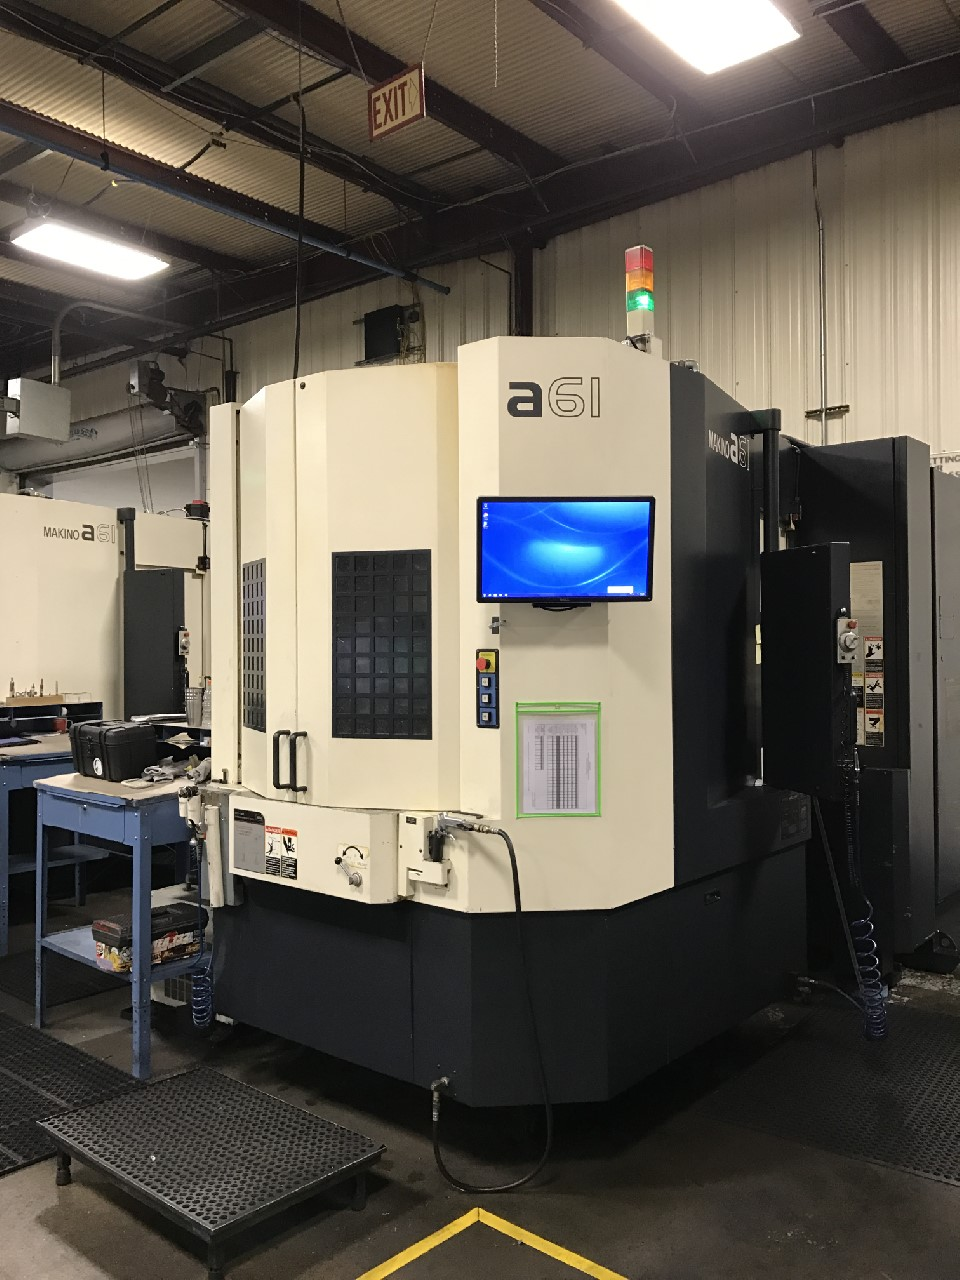 "Makino A61 4-Axis HMC, 2005, 19.7"" Pallets, 28.7""x25.6""x28.7"" Travels, 12K RPM, CT40, Makino Pro 3 Ctrl, Renishaw Probe, Coolant, 60 ATC, Full 4th Axis"